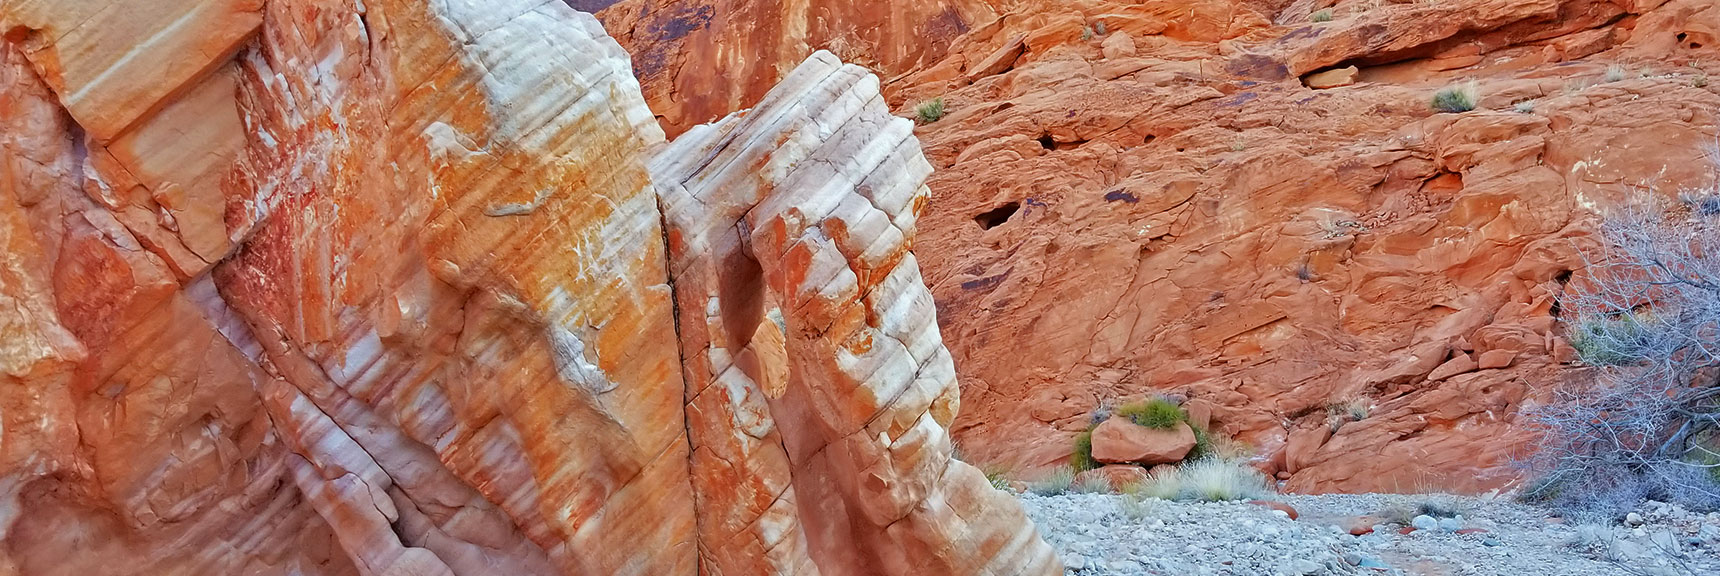 Colorful Firewave Rock Formations in the Northern Canyon Wash on Prospect Trail in Valley of Fire State Park, Nevada